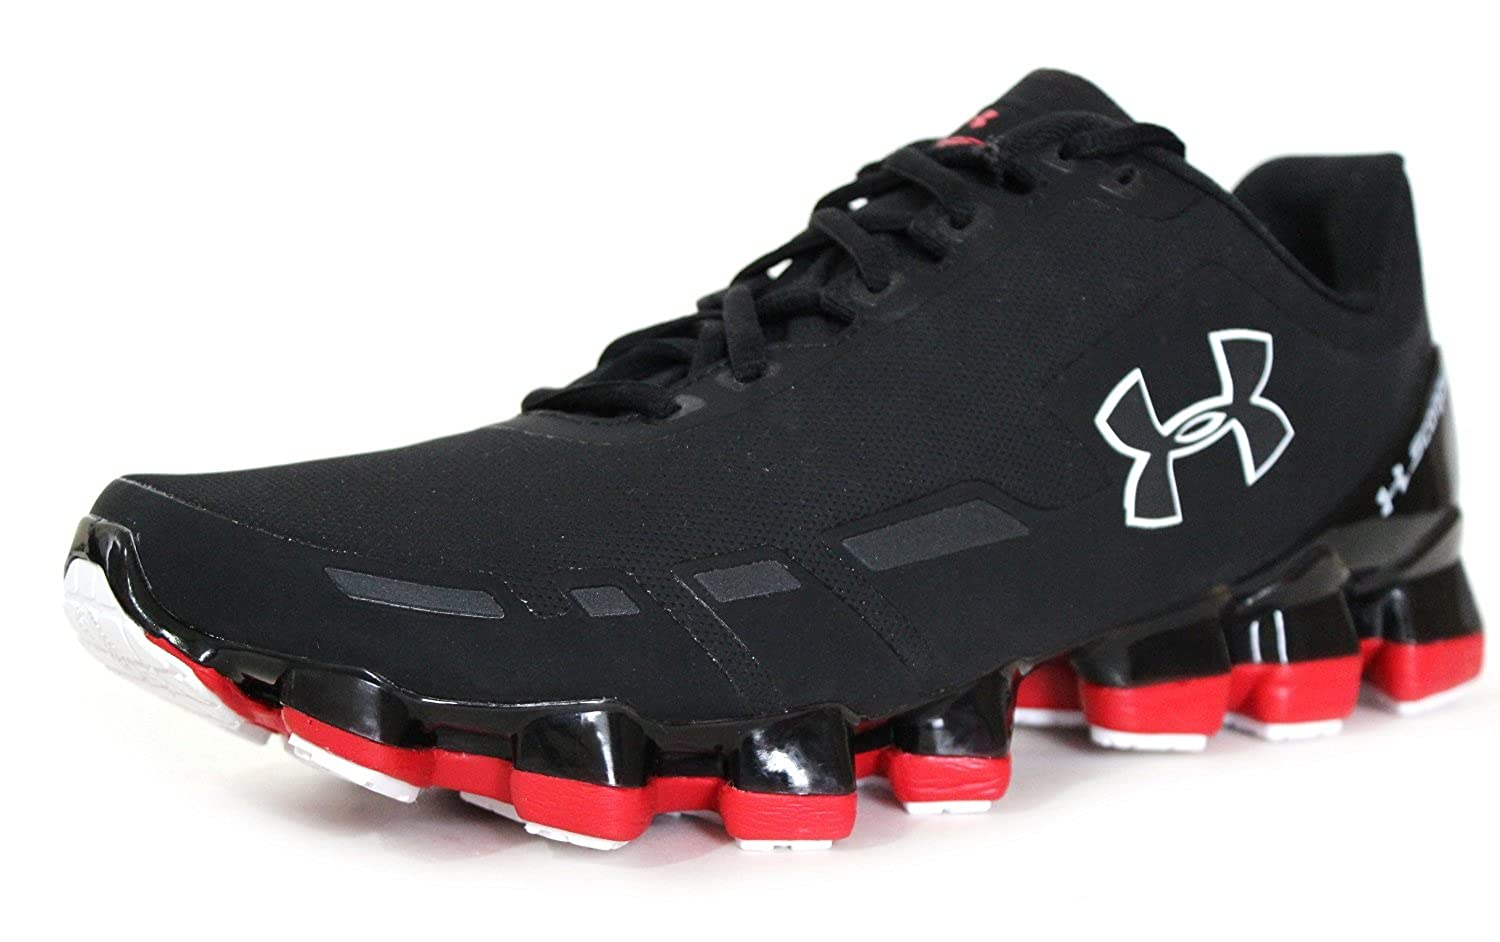 official photos 0cae1 cc71e Under Armour Men's UA Scorpio Running Shoes Size 11 Black ...